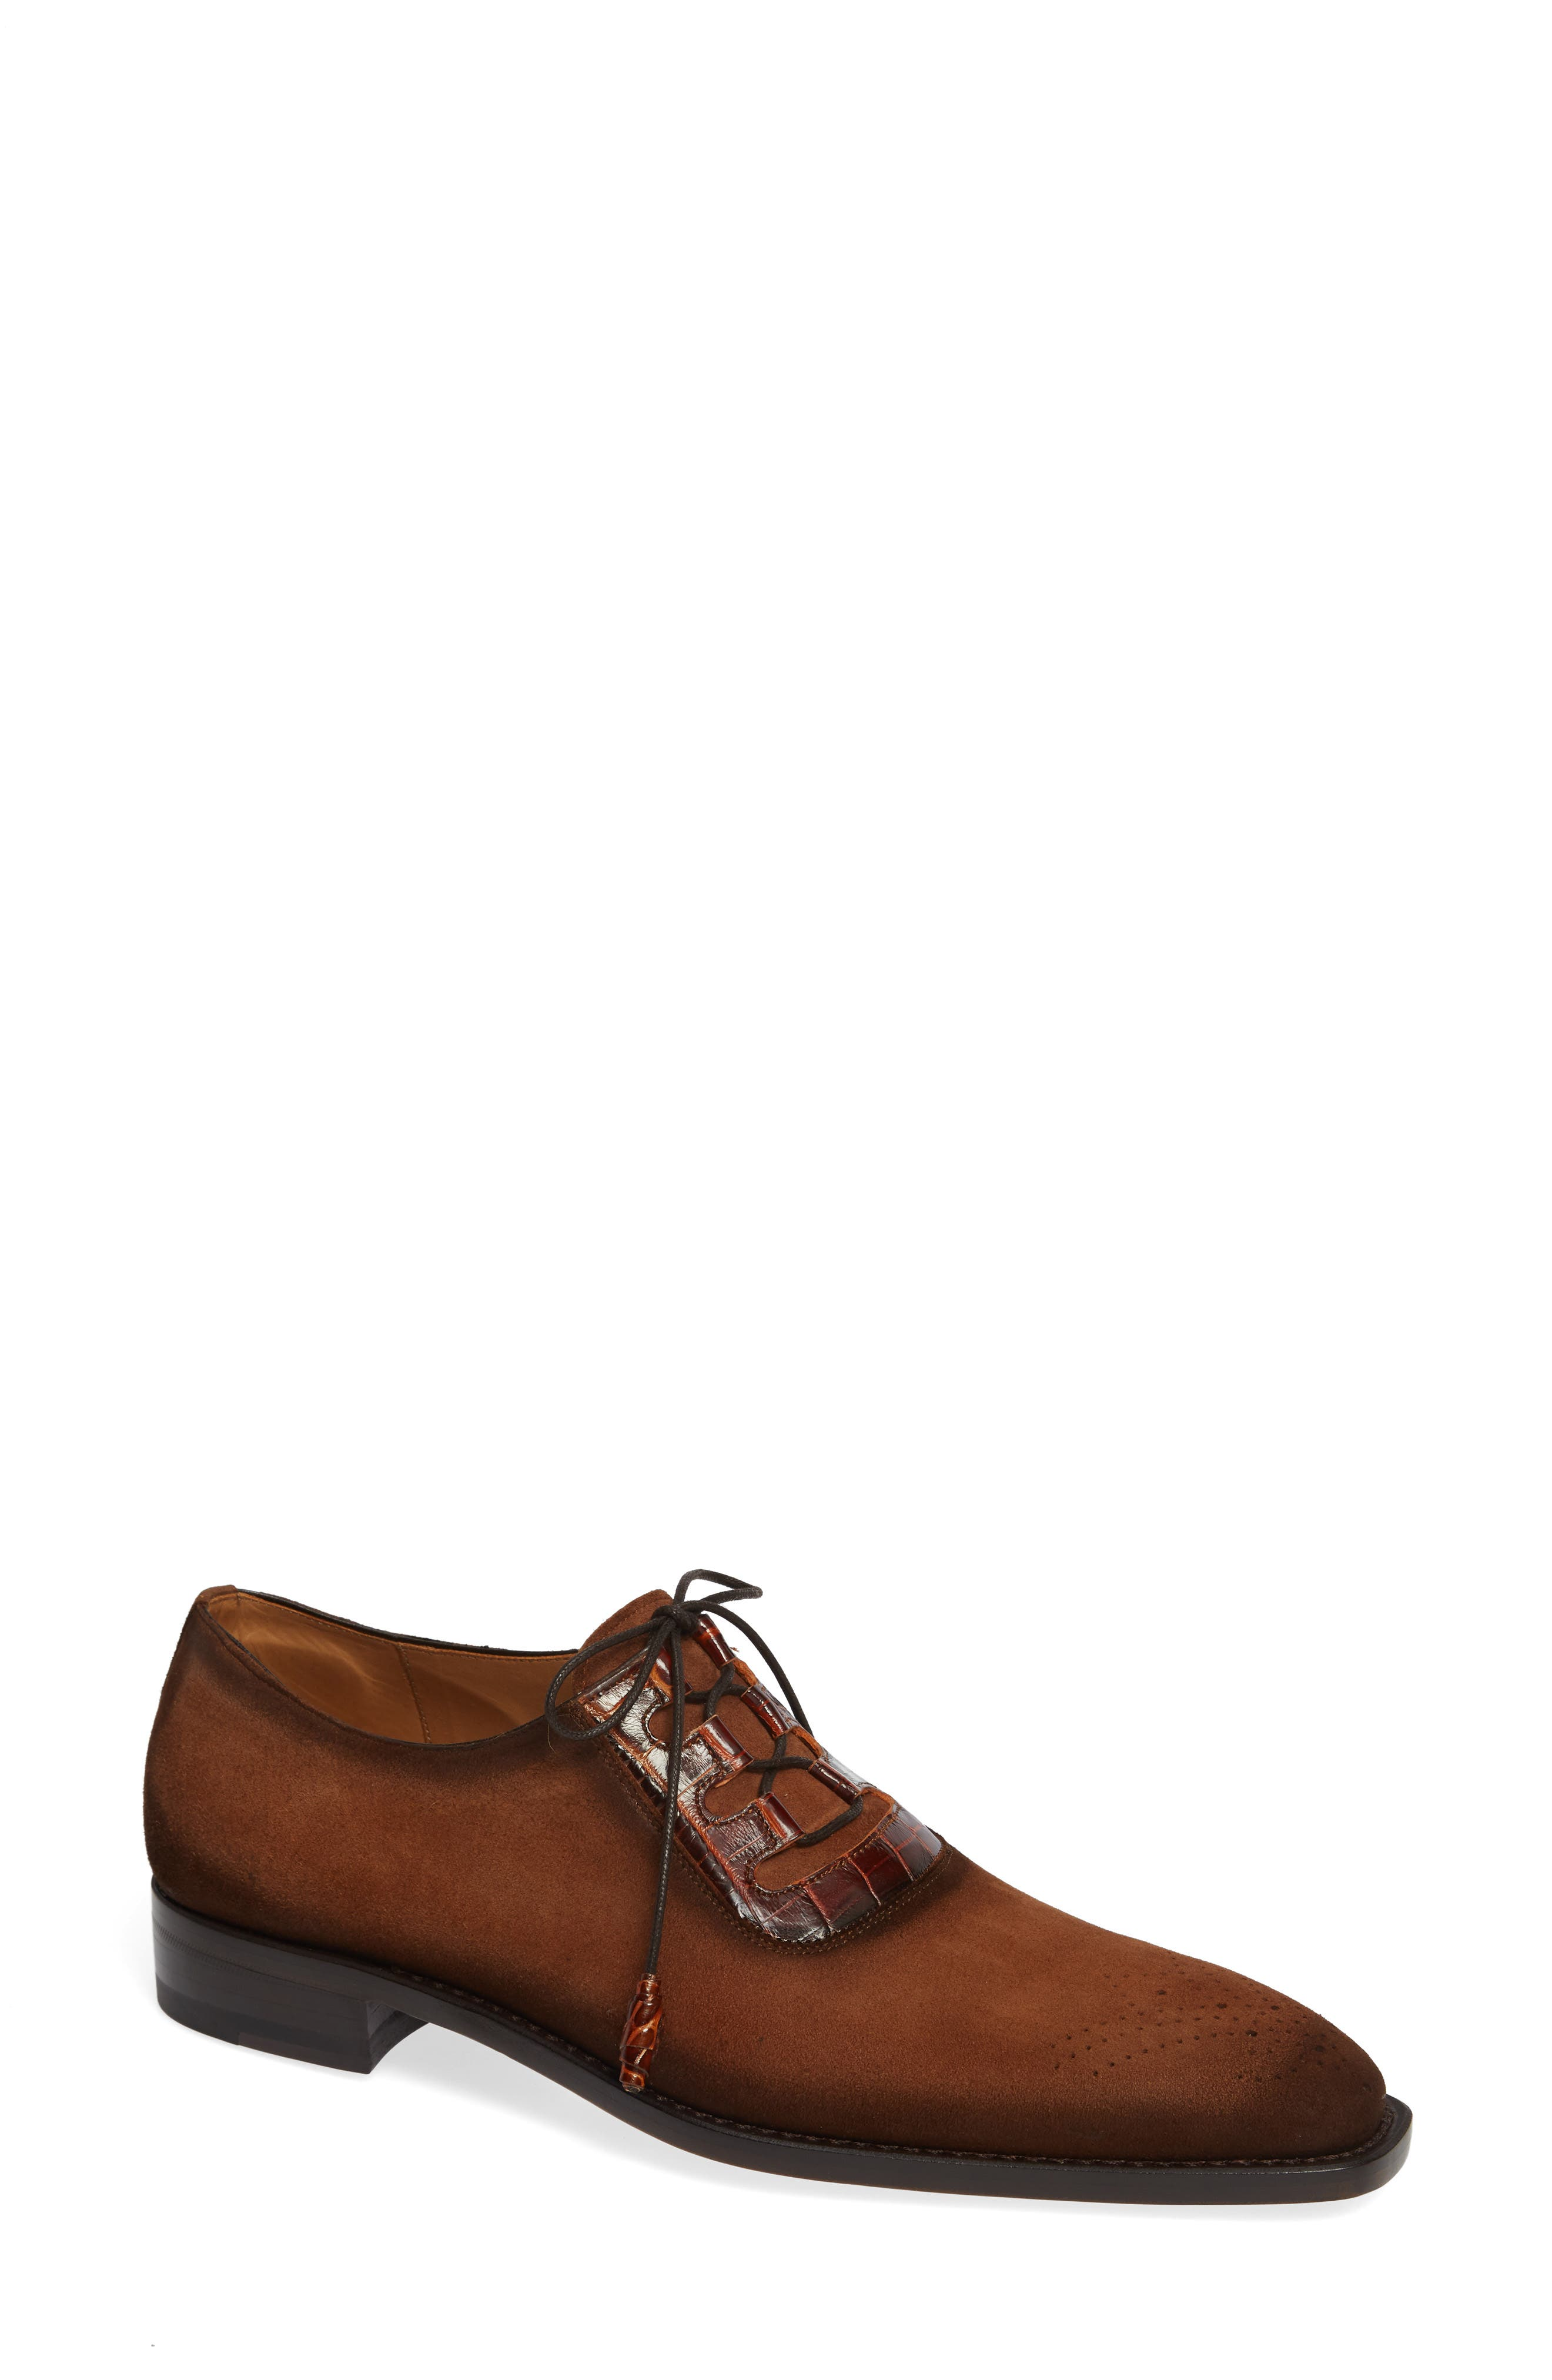 Cassel Oxford,                             Main thumbnail 1, color,                             COGNAC